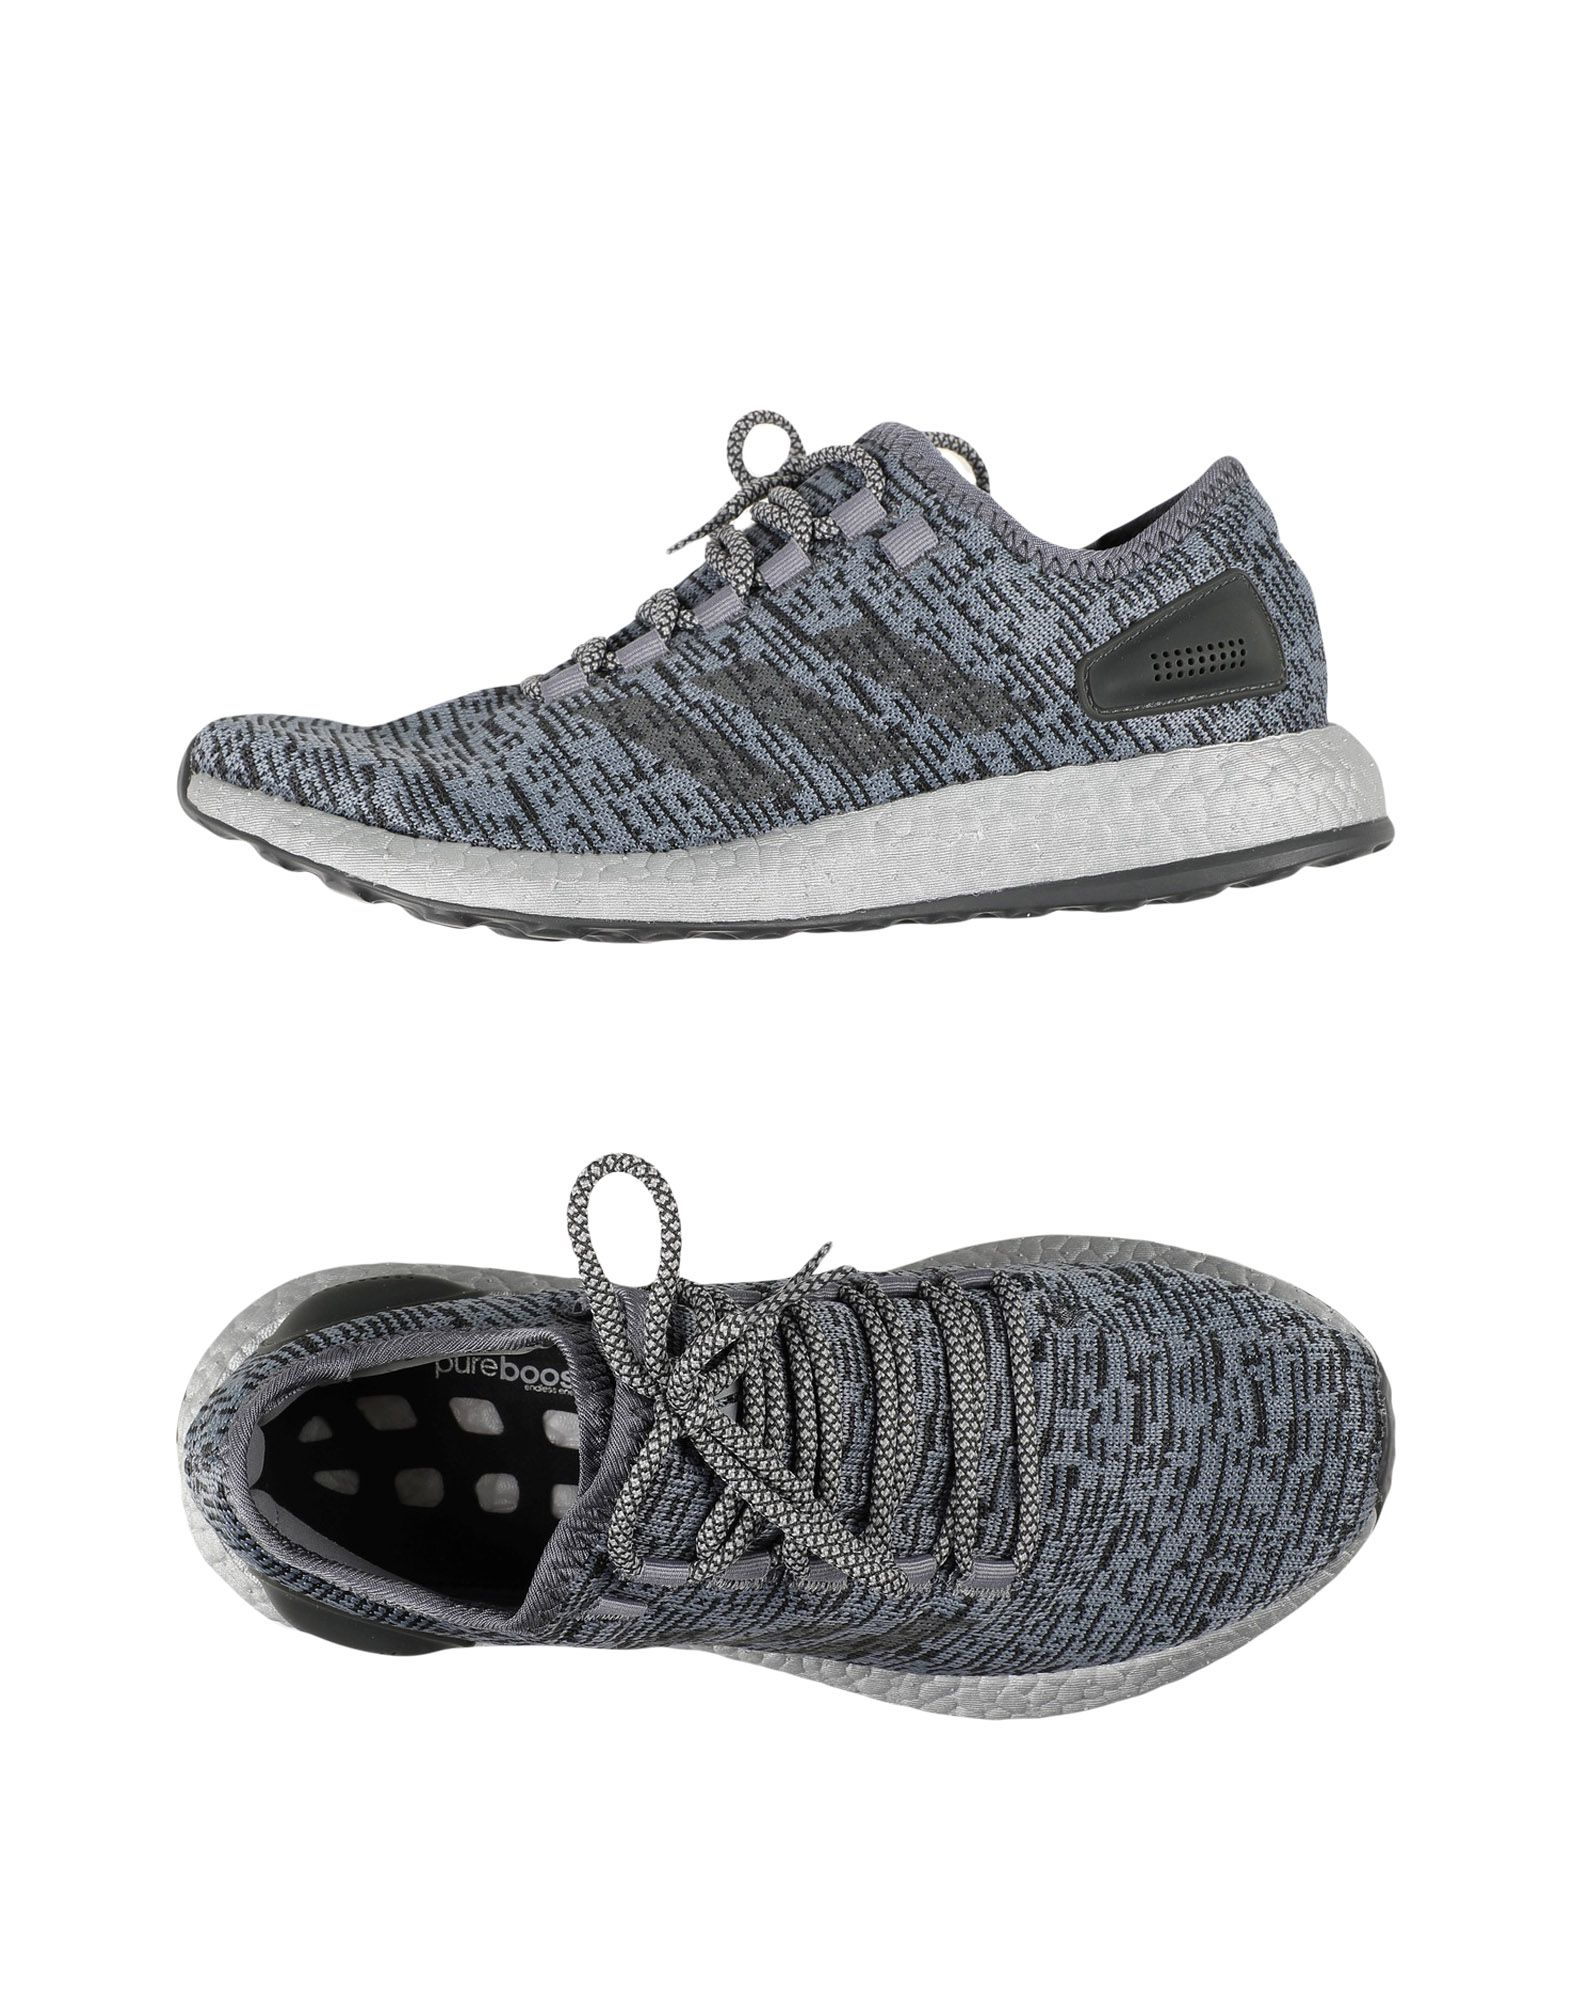 Adidas on Sneakers - Men Adidas Sneakers online on Adidas  Canada - 11483914WE 737fb3